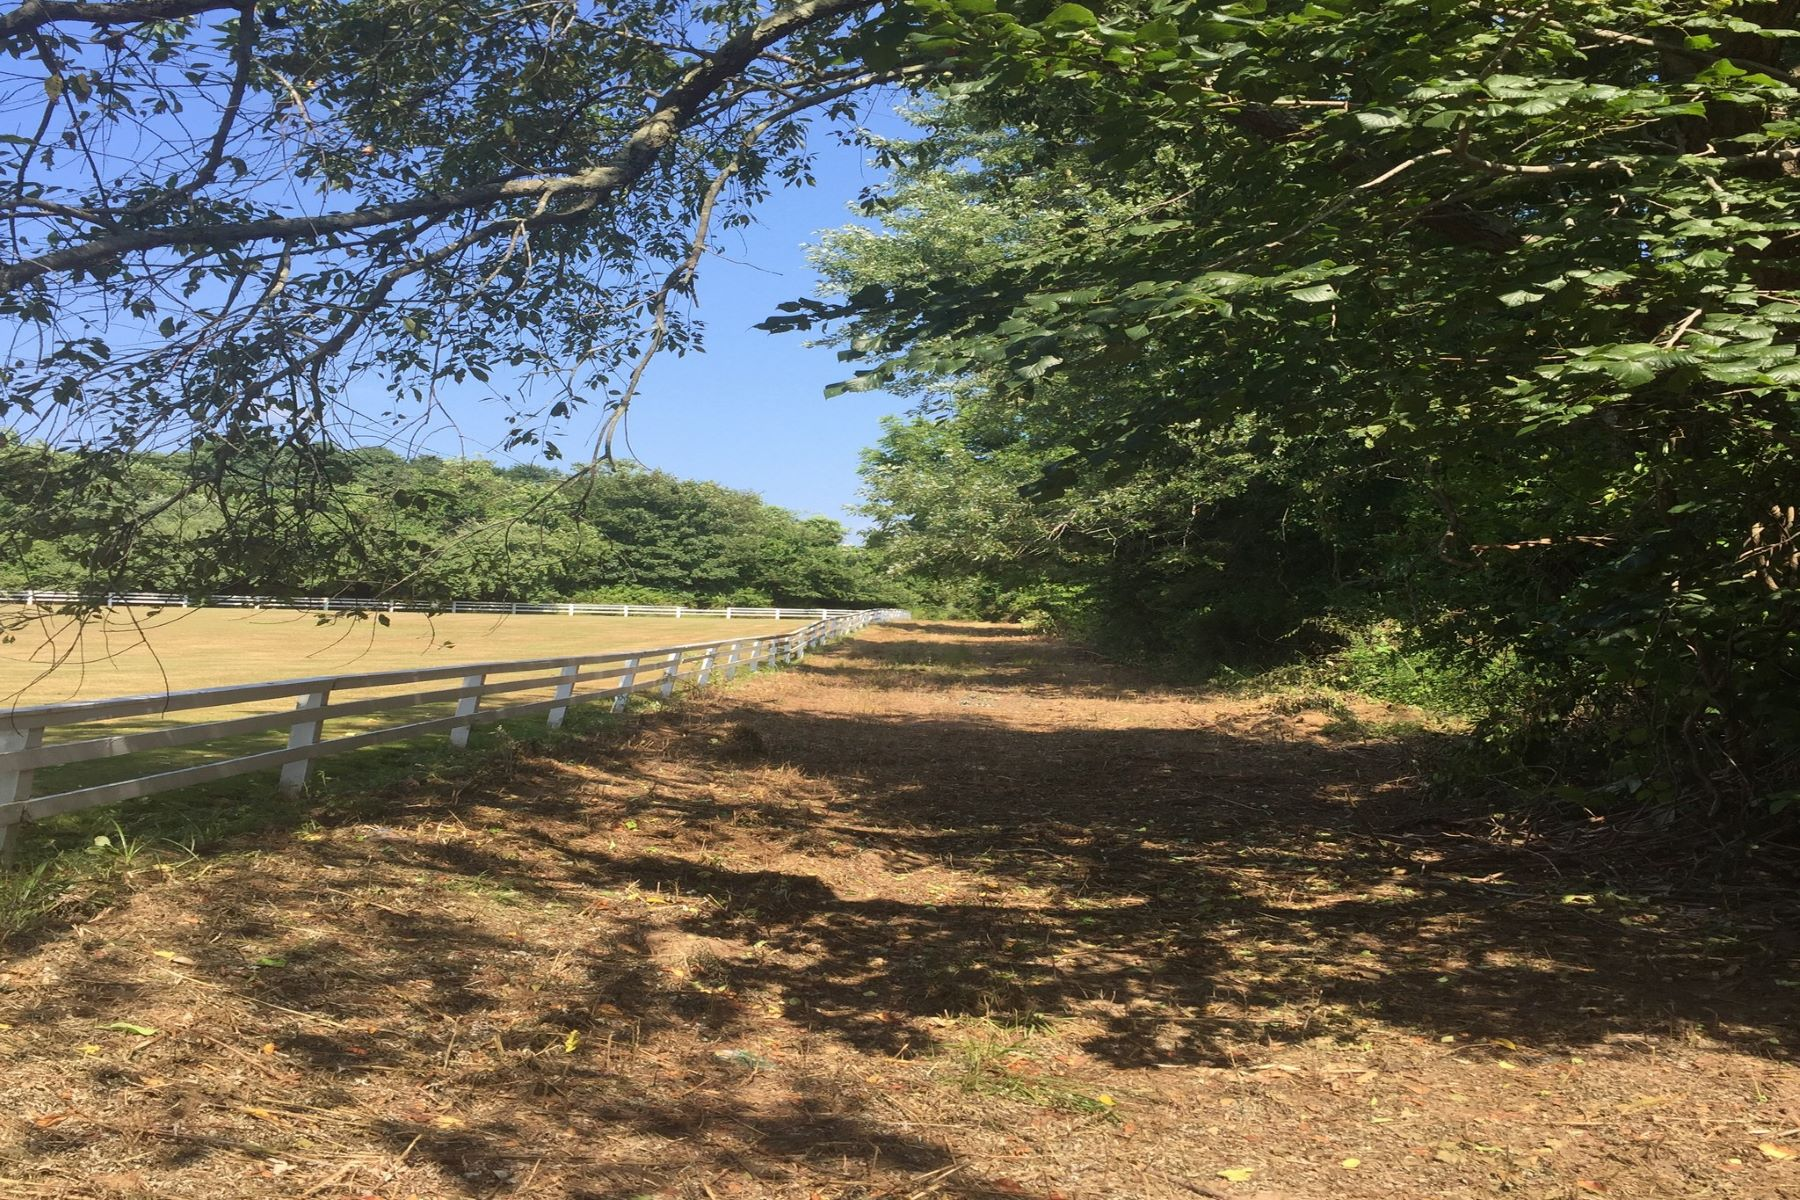 Land for Sale at 1080 Ackerly Pond Rd , Southold, NY 11971 1080 Ackerly Pond Rd Southold, New York 11971 United States